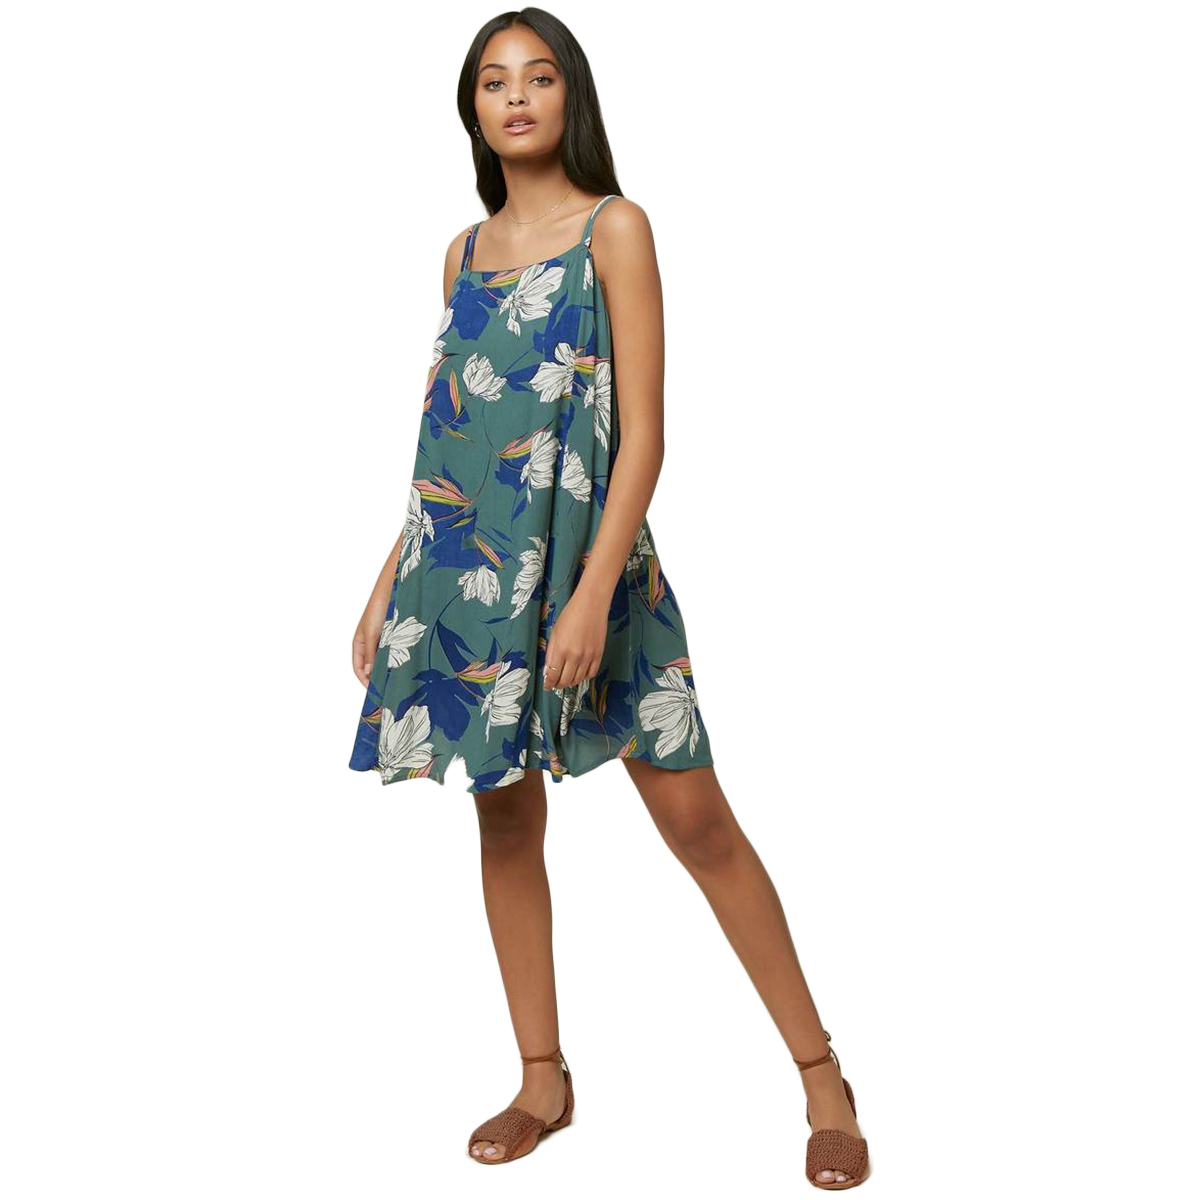 O'neill Women's Floral Print Azalea Dress - Blue, M